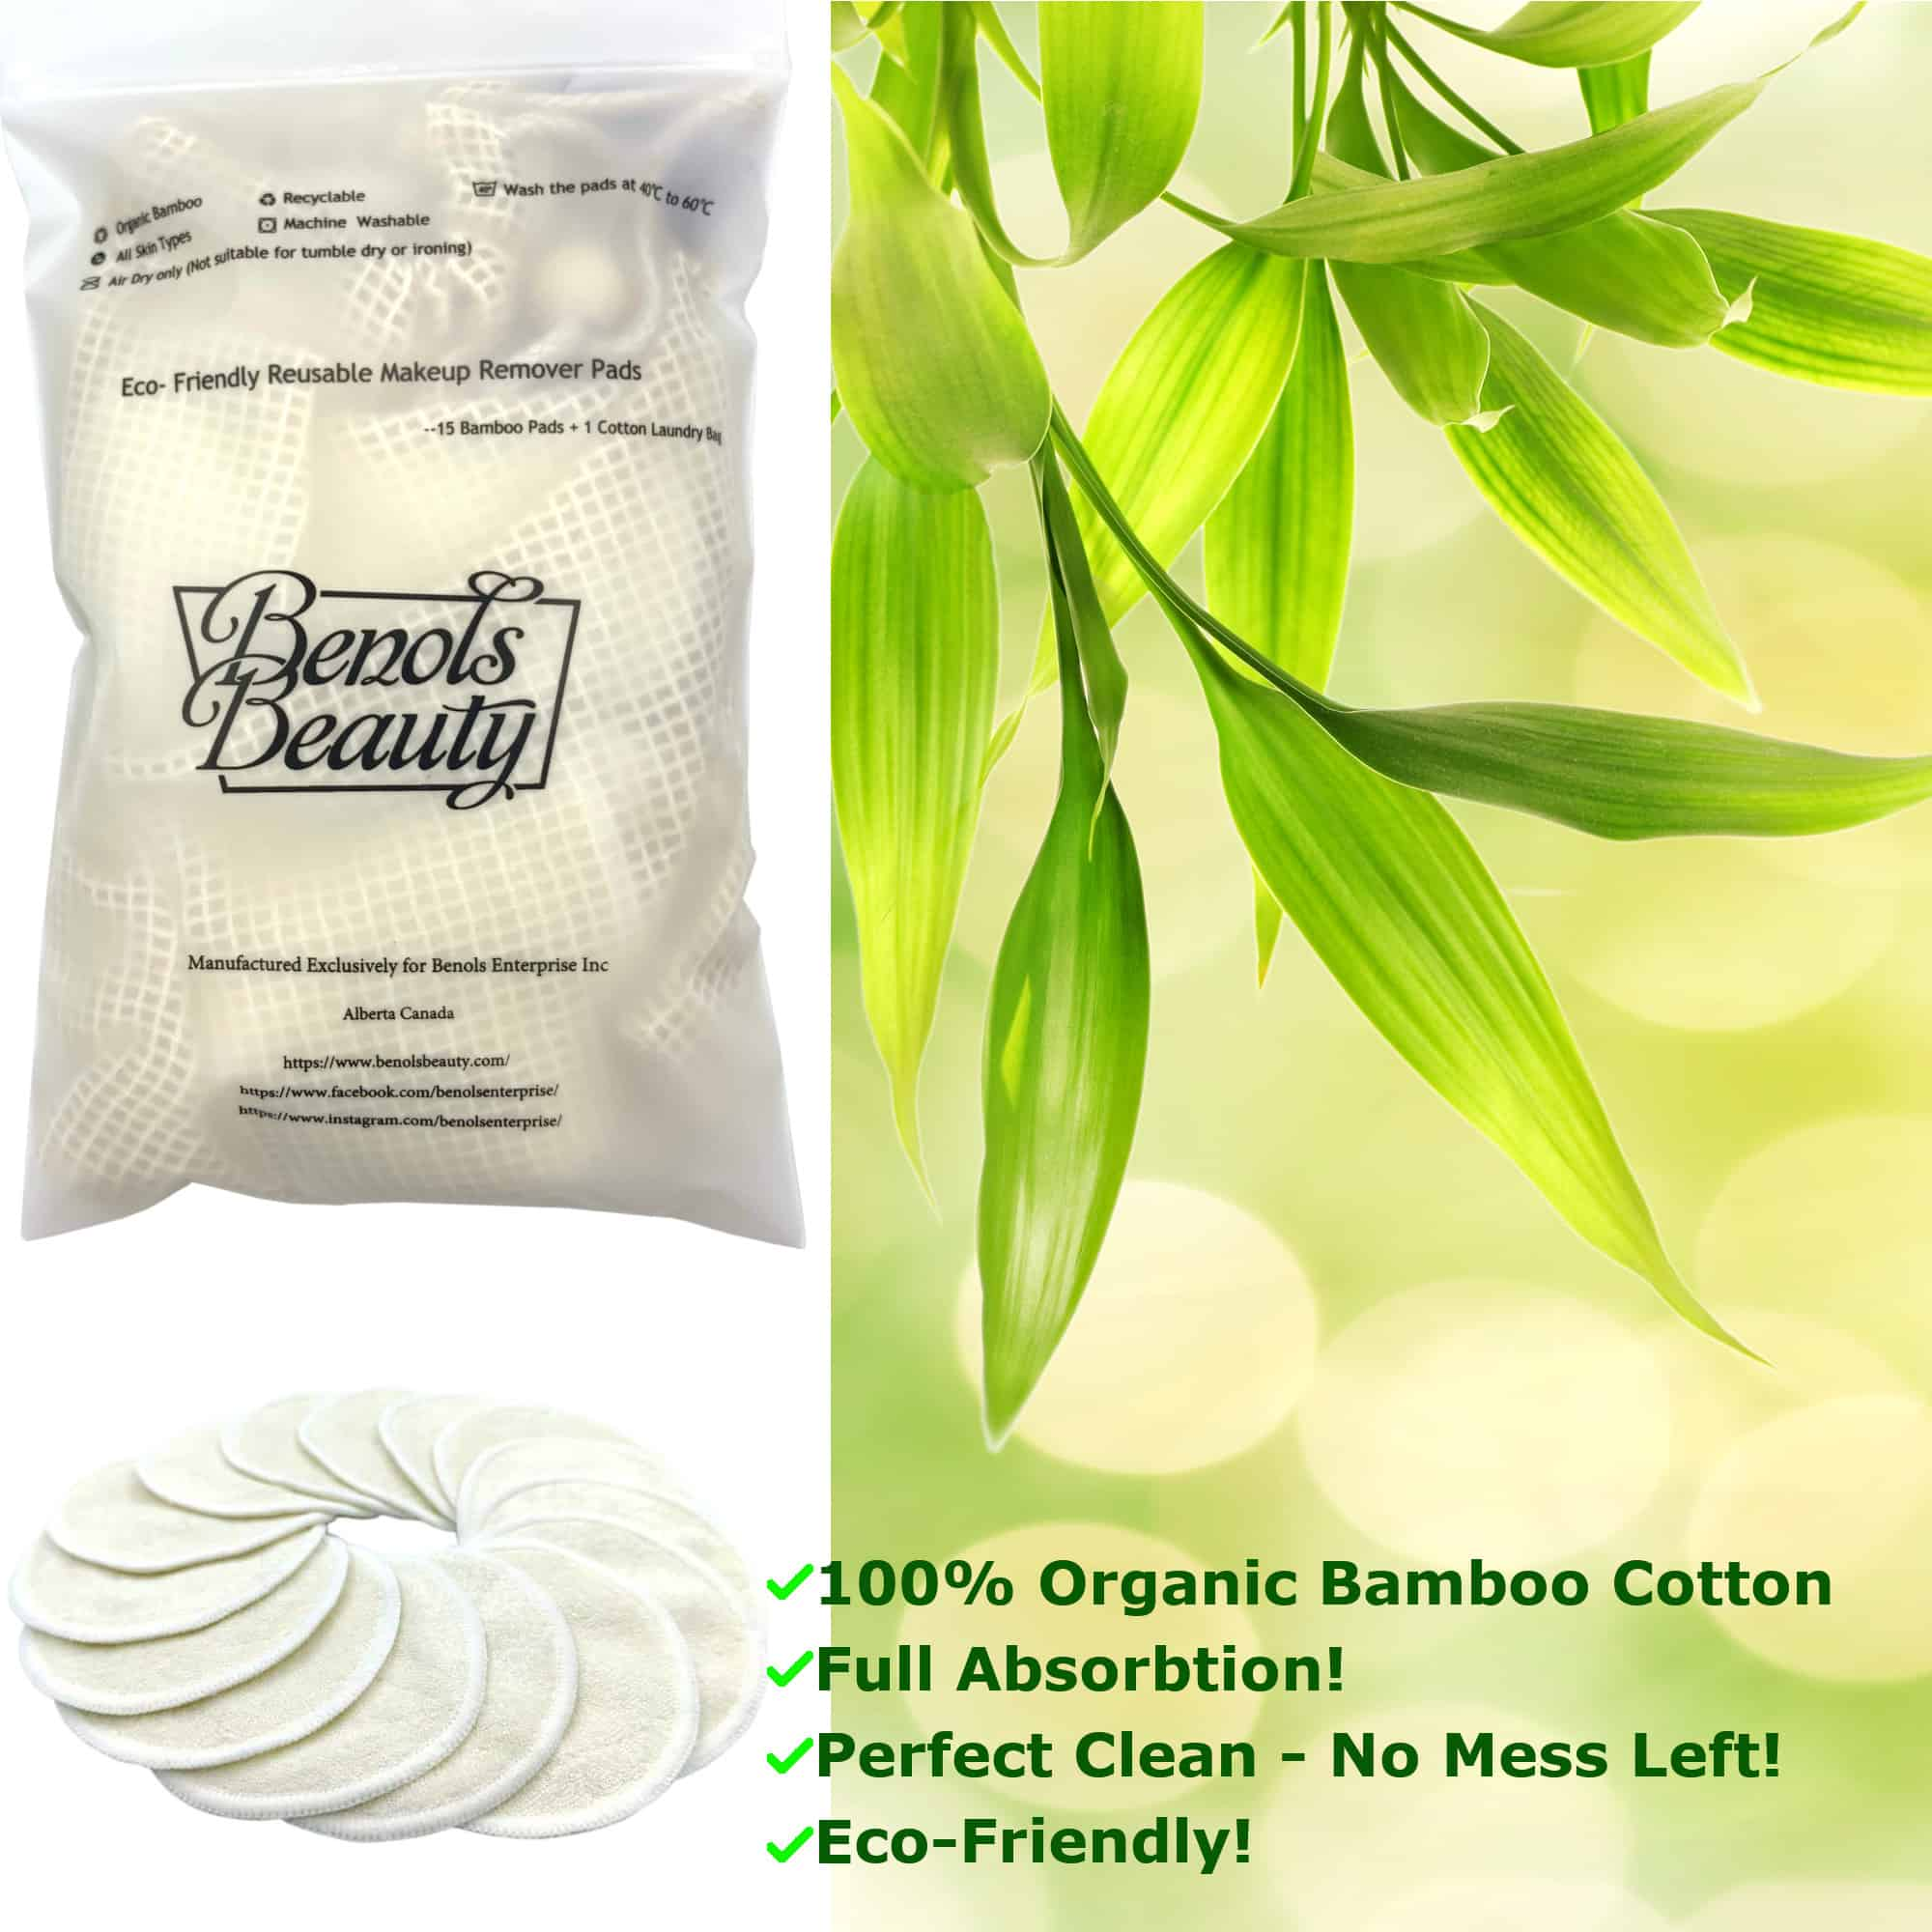 15 Pack Reusable Bamboo Makeup Remover Cloths - Benols Beauty